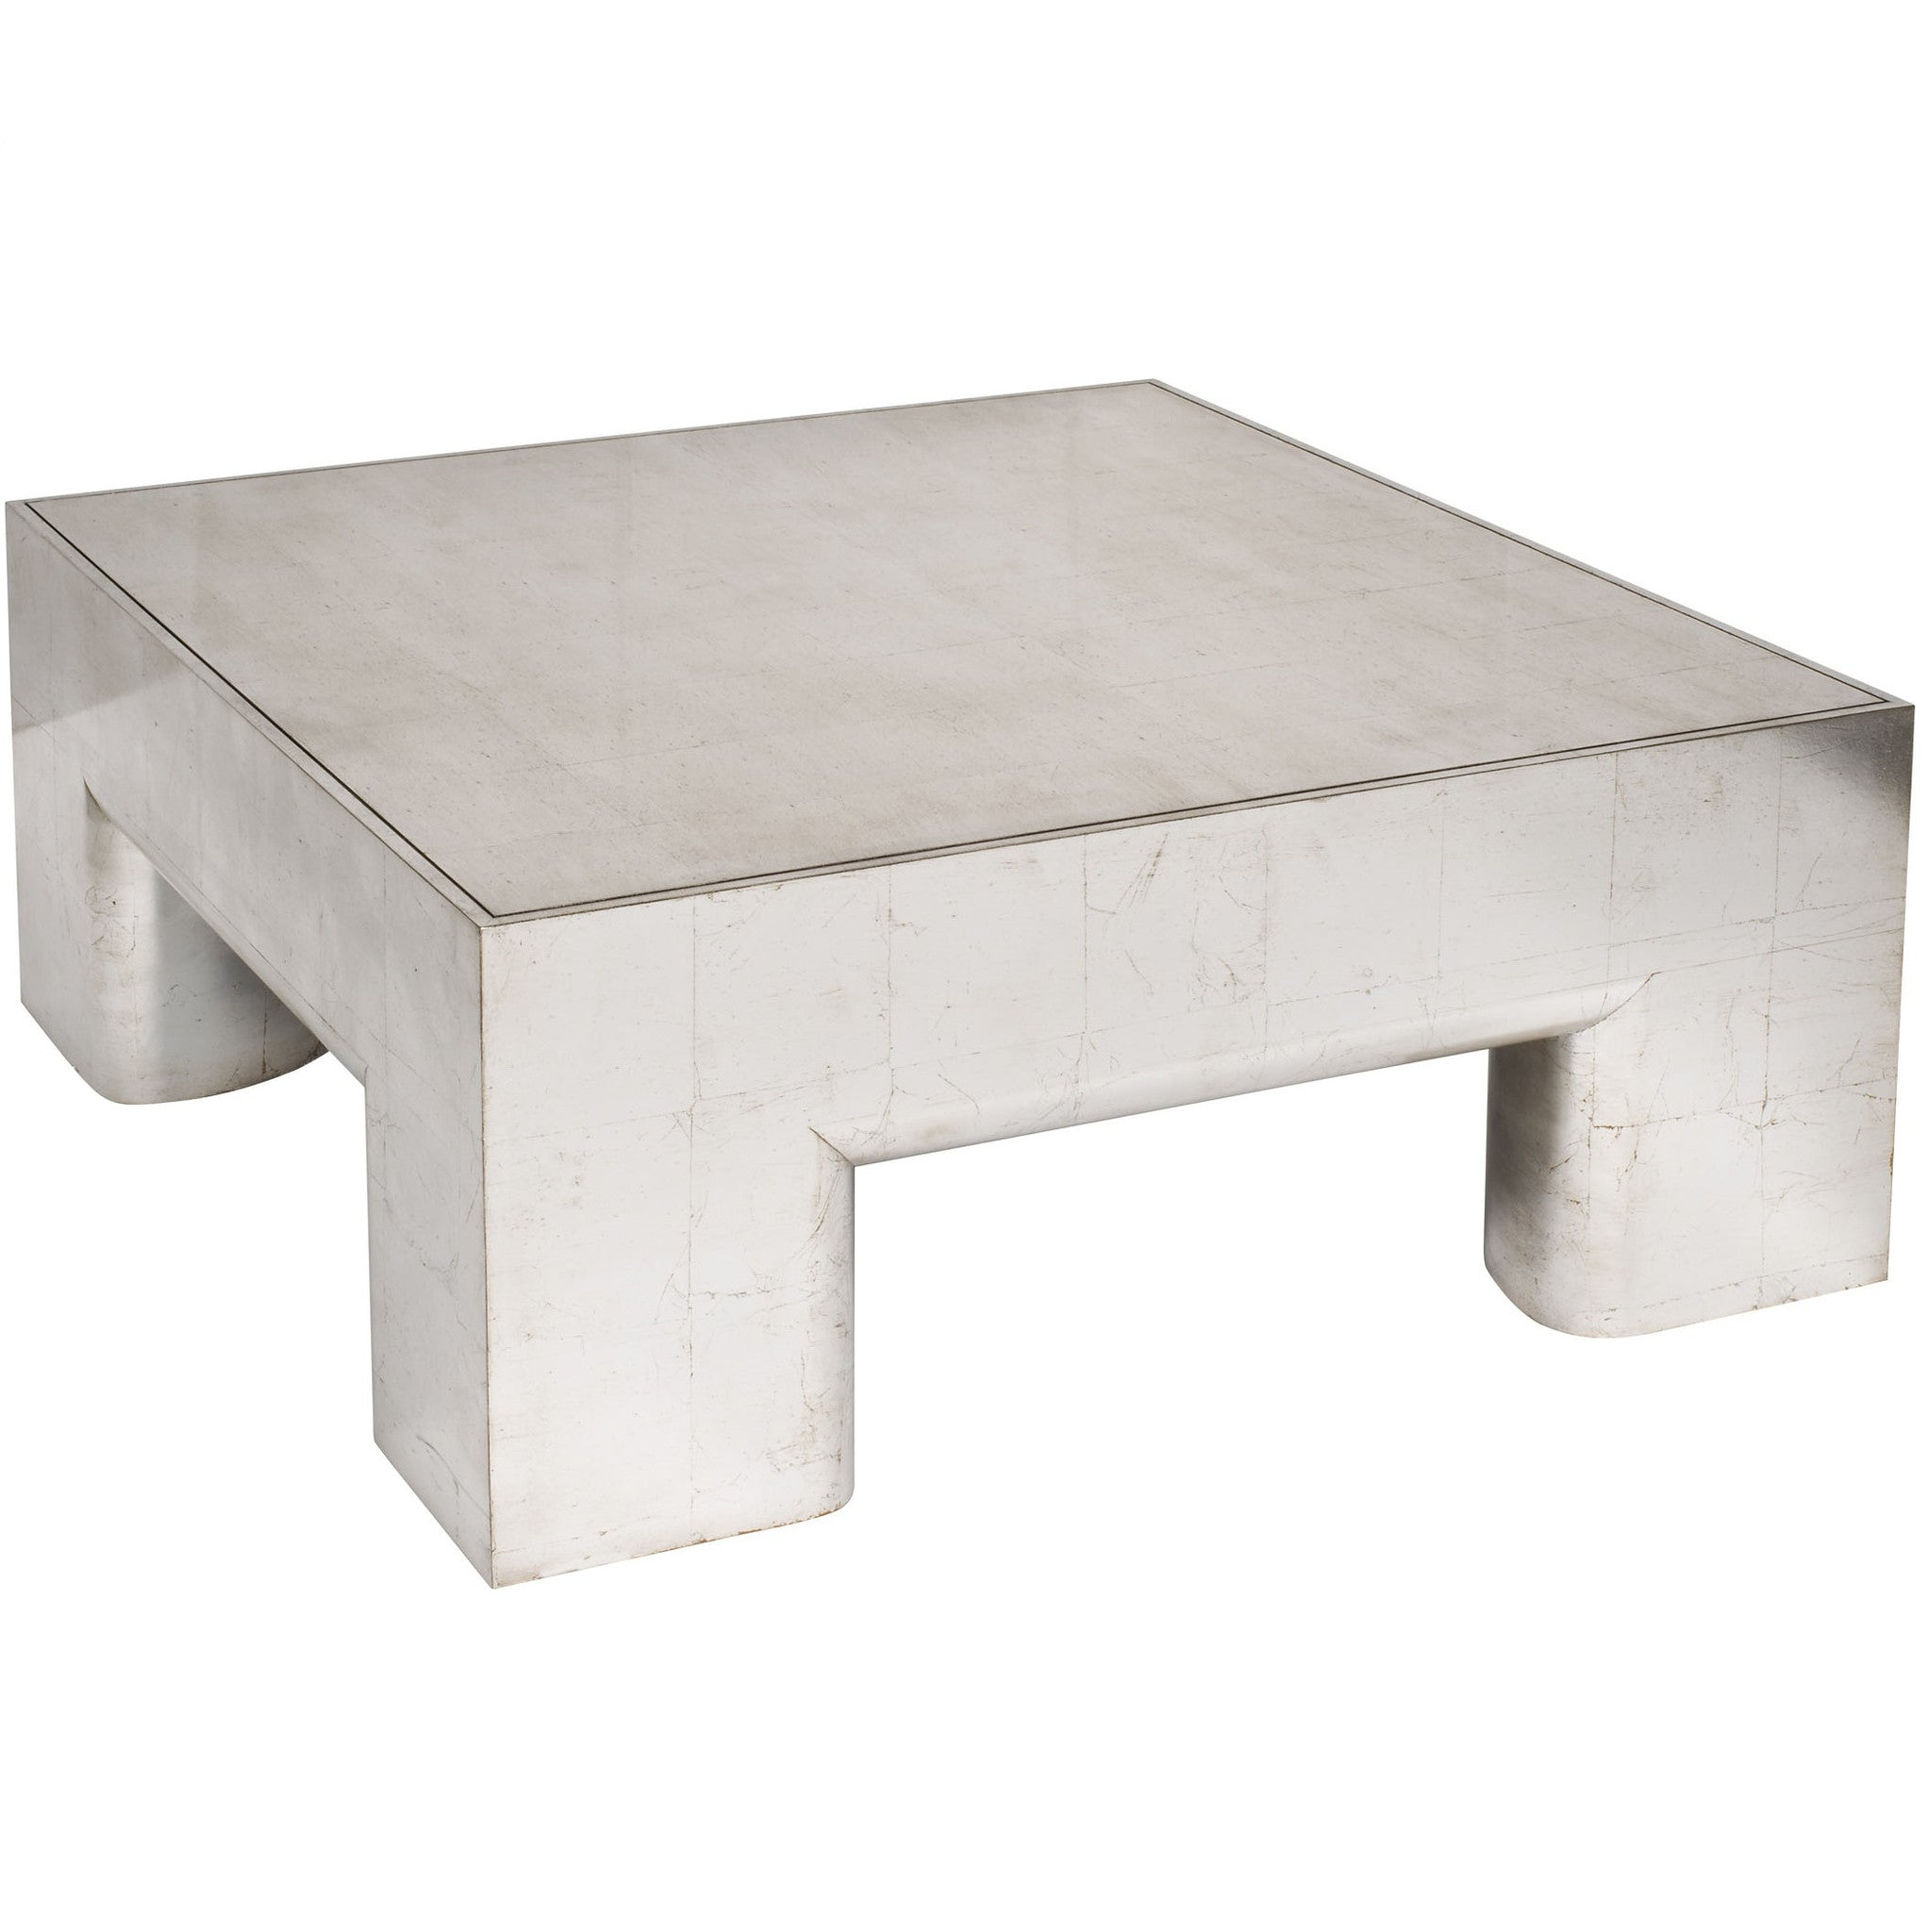 Parsons Square Coffee Table Contemporary Parsons Square Coffee Table Villa Decor Design Style